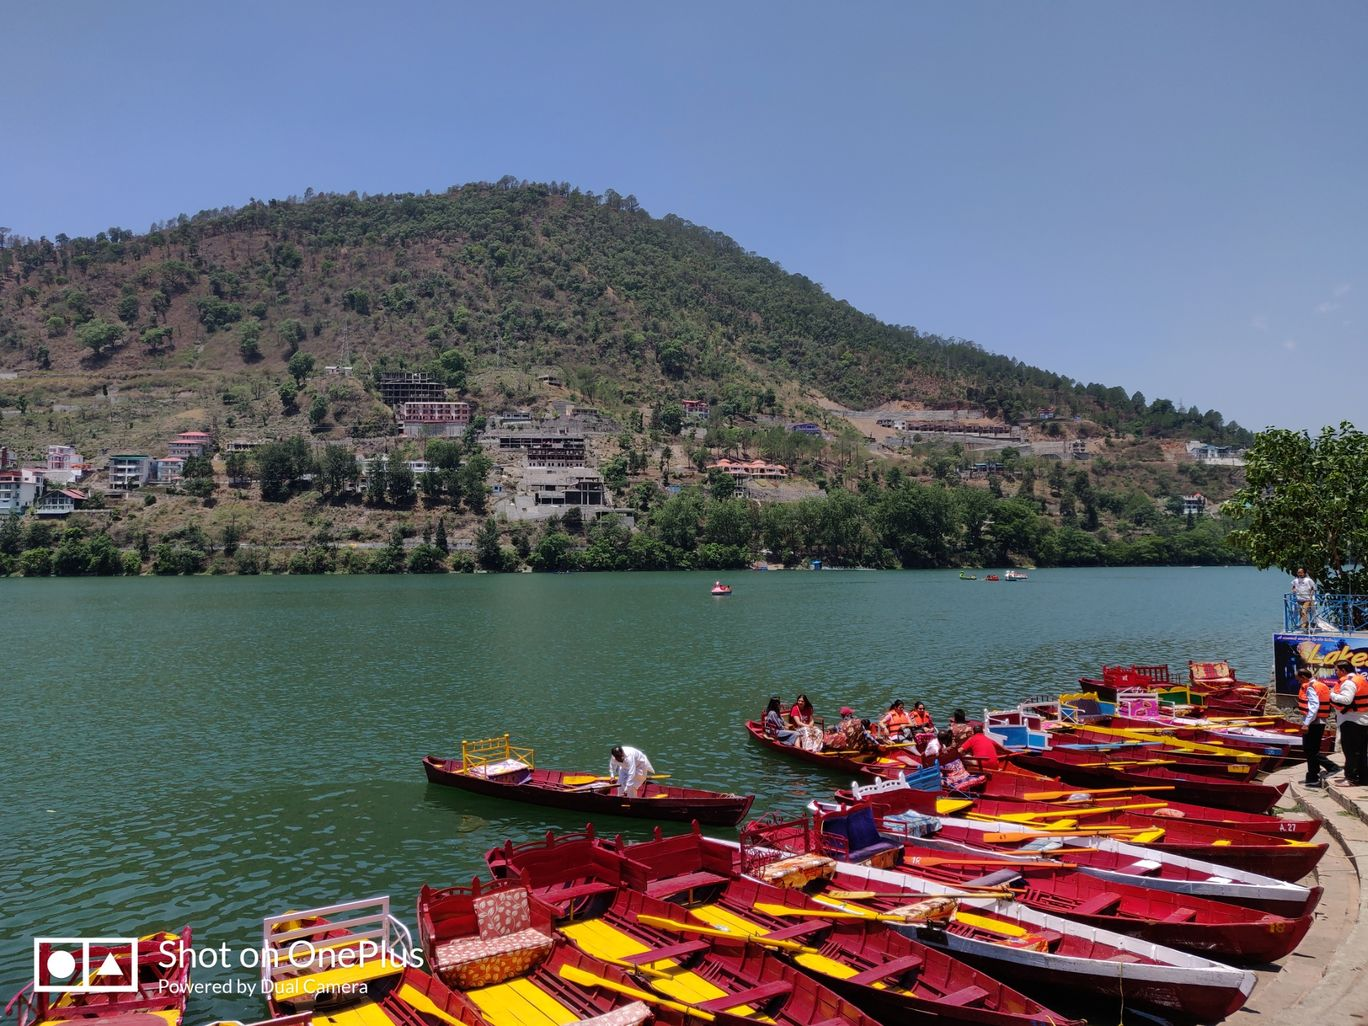 Photo of Bhimtal By mohd amaan